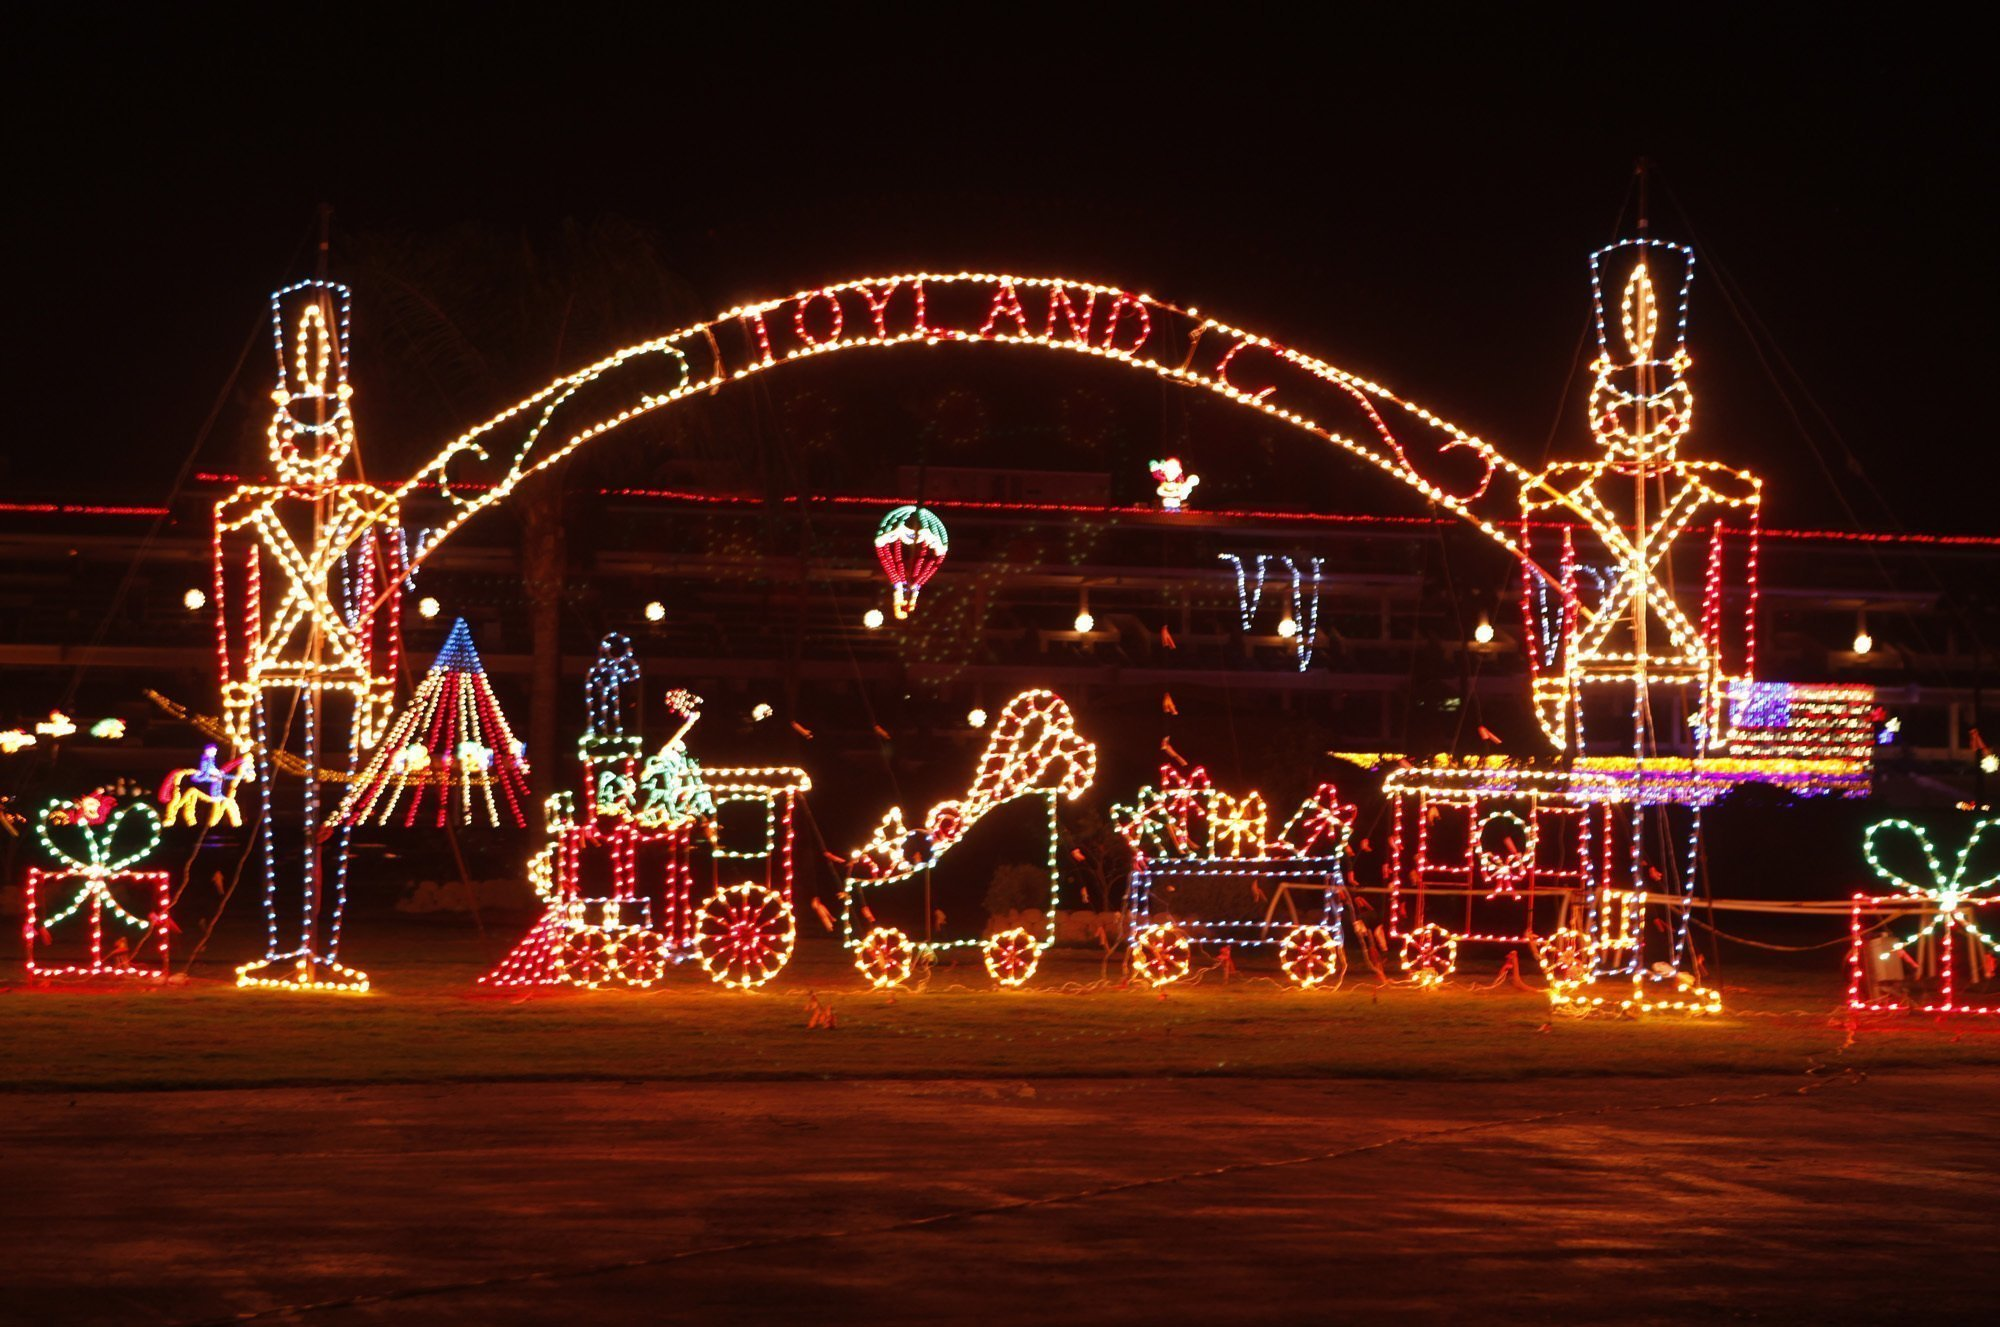 Local families miss Del Mars Holiday of Lights display The San